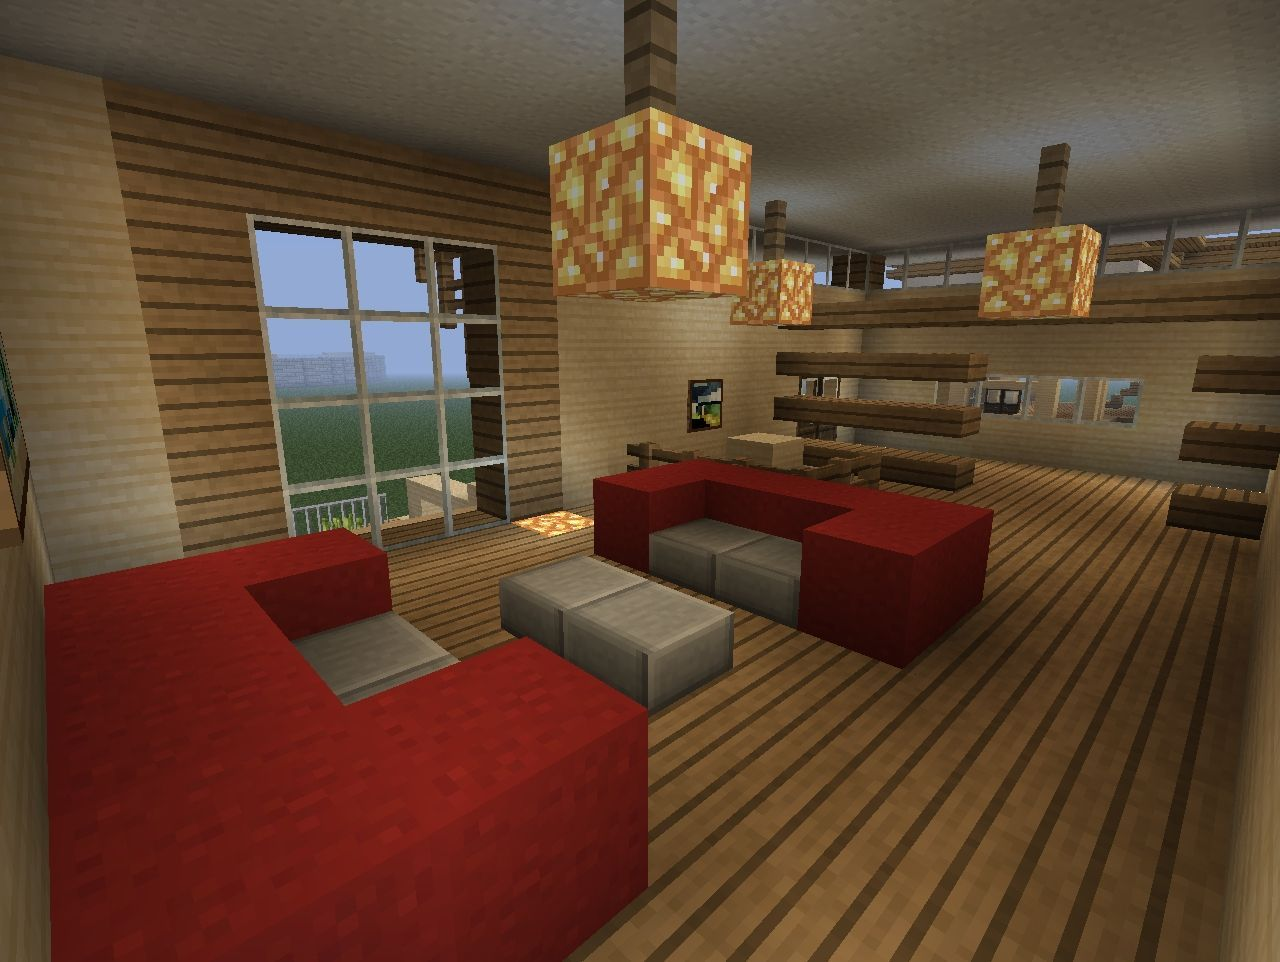 1000  images about minecraft building ideas on pinterest ...